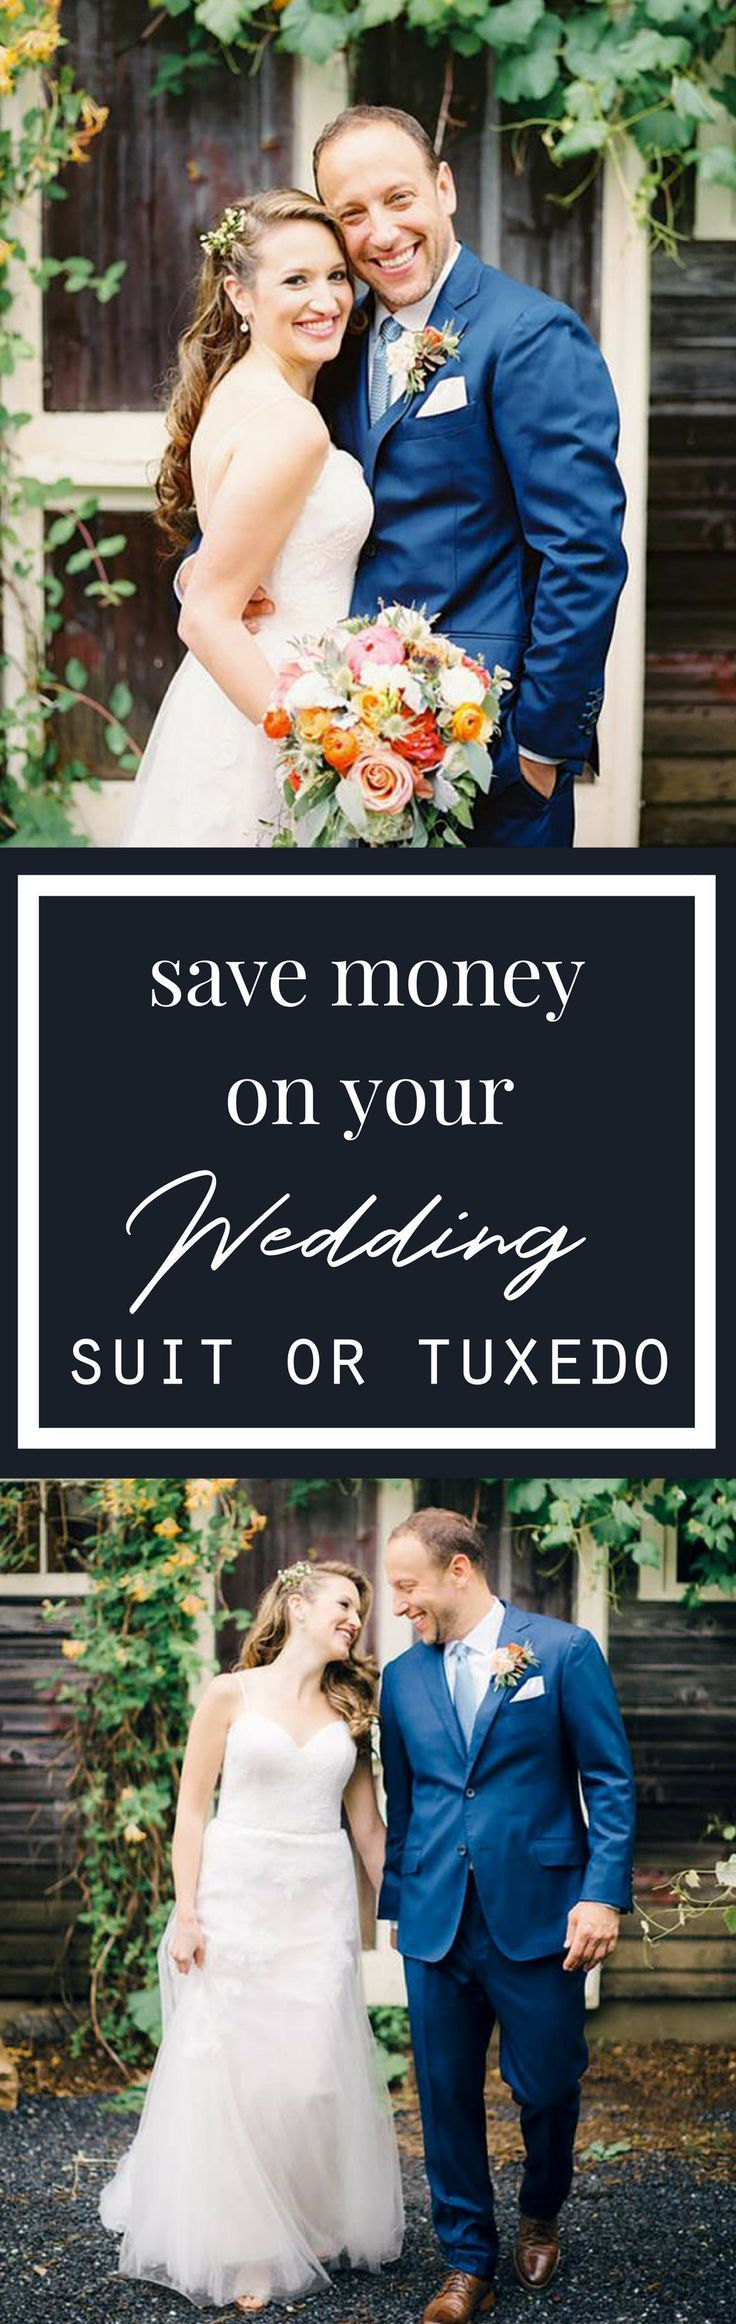 Stylish suits and tuxedos you will own for less than the cost of a rental. #mensfashion #menswear #menstyle #wedding